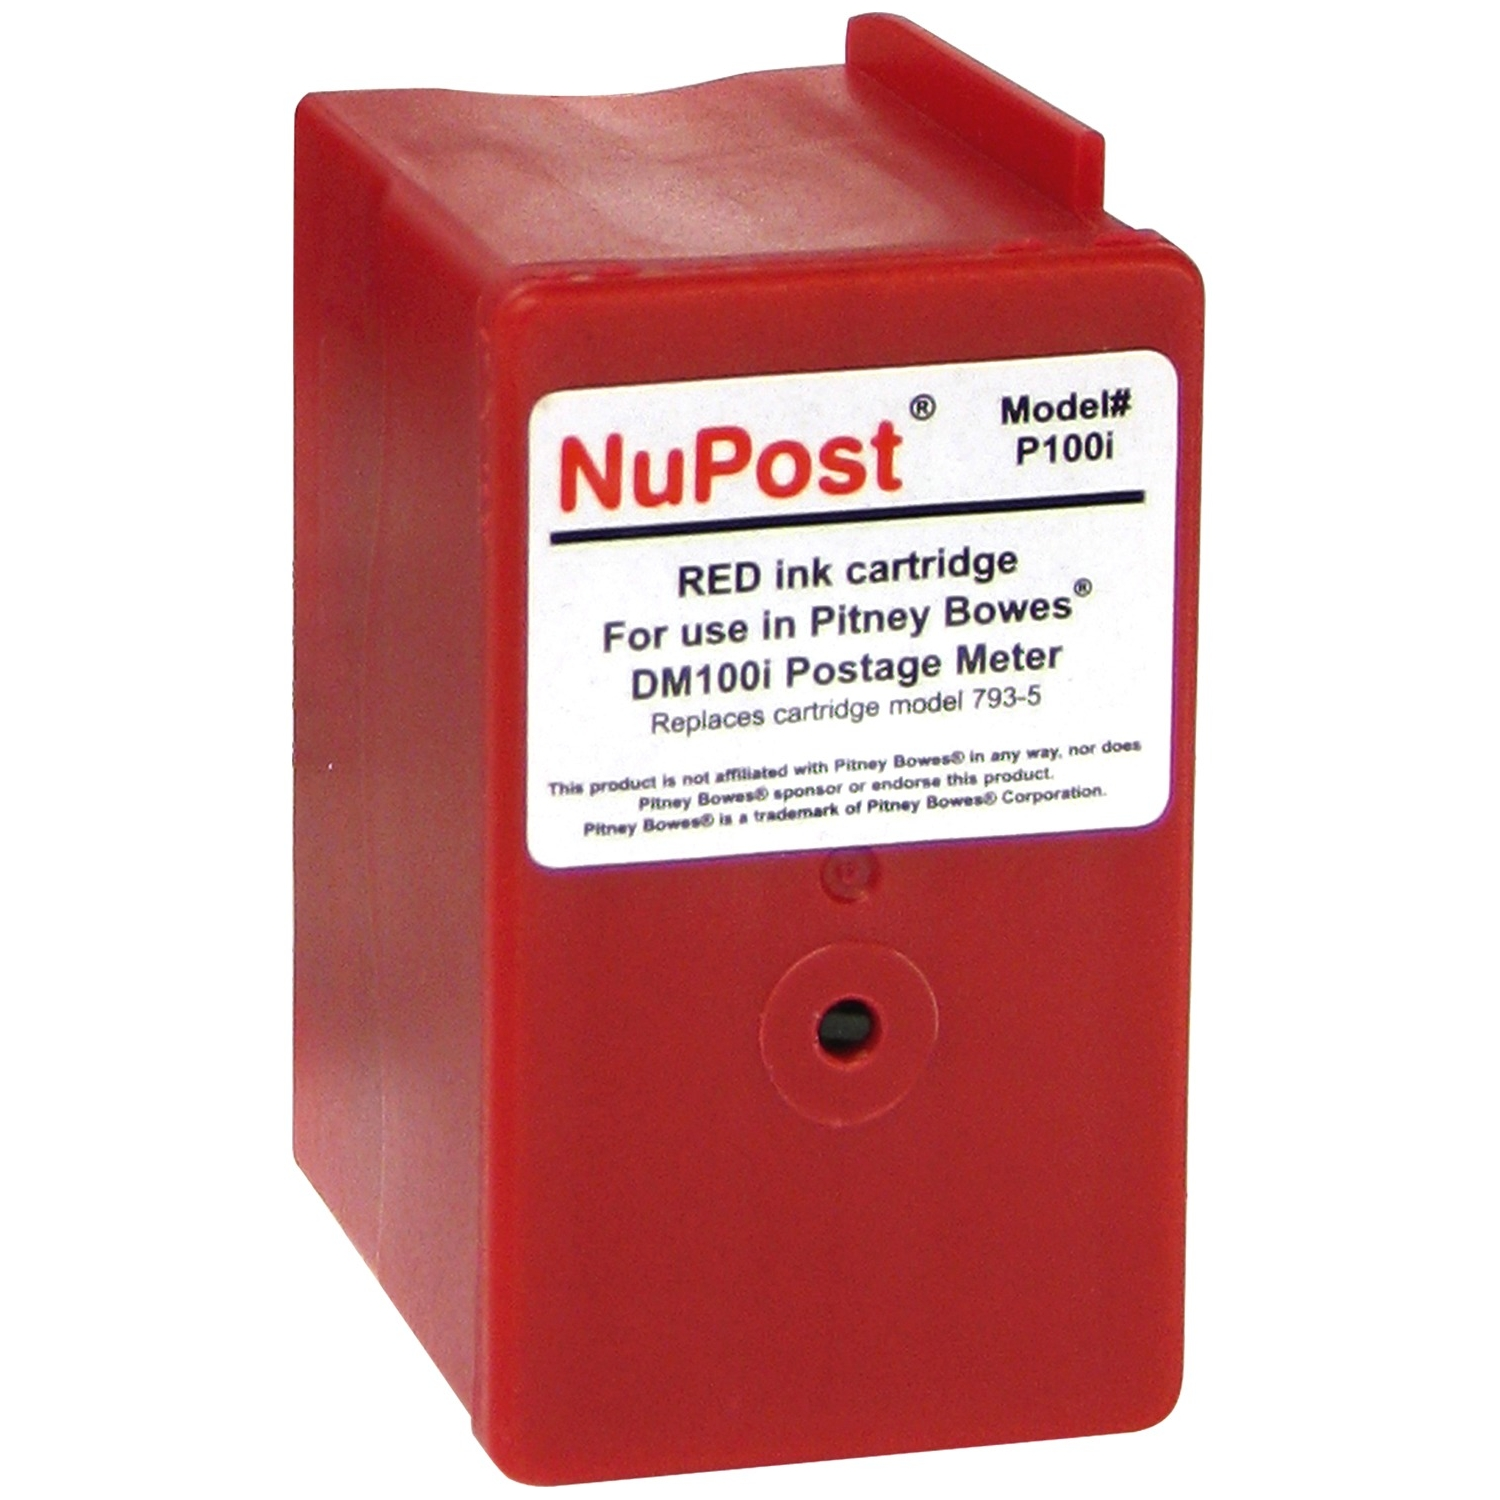 Red Ink Cartridge for Pitney Bowes Postage Meter - Inkjet - 3000 Page